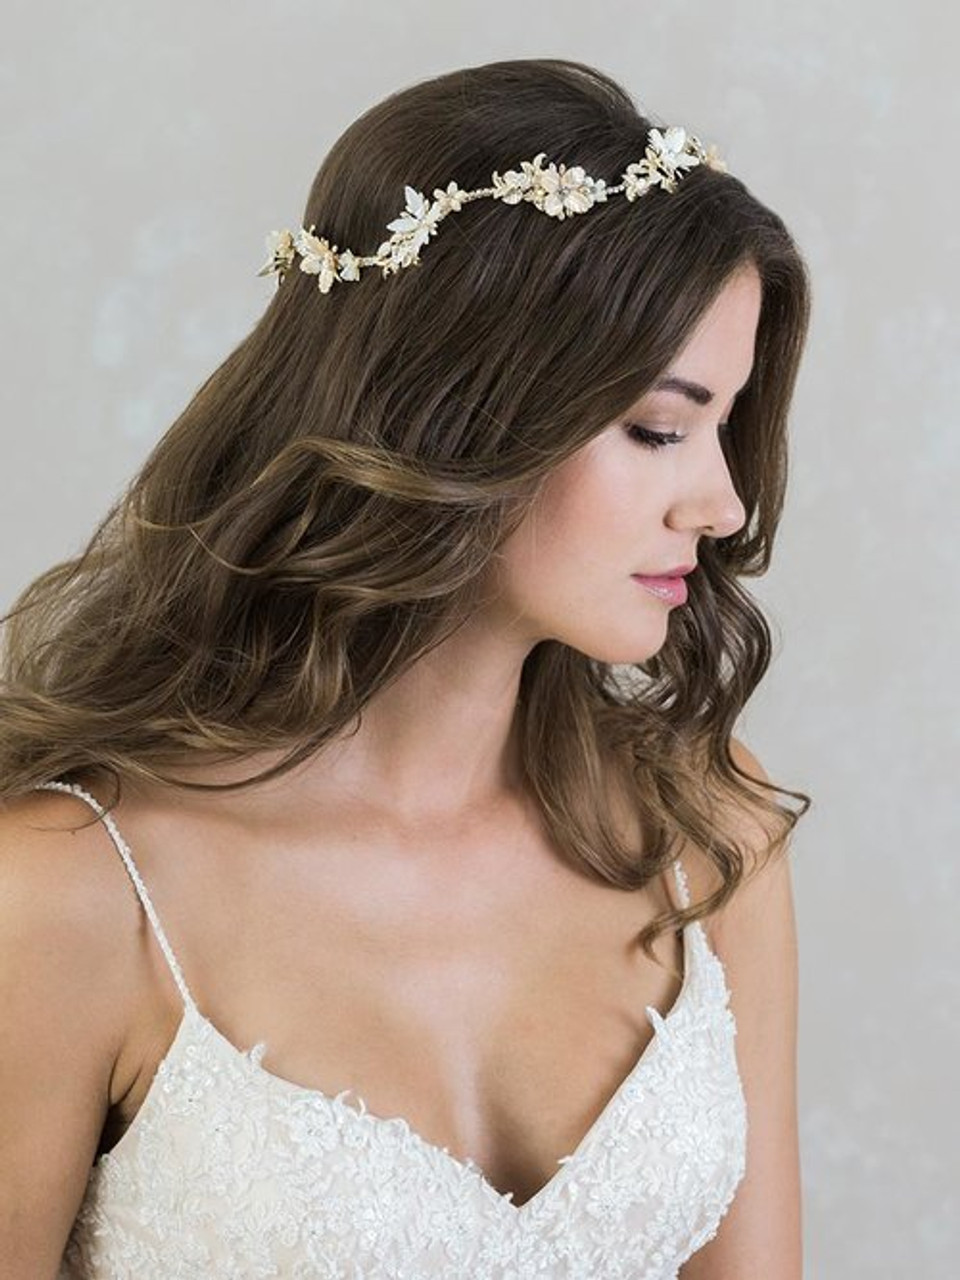 Bel Aire Bridal 6810 halo mother-of-pearl flowers and rhinestones